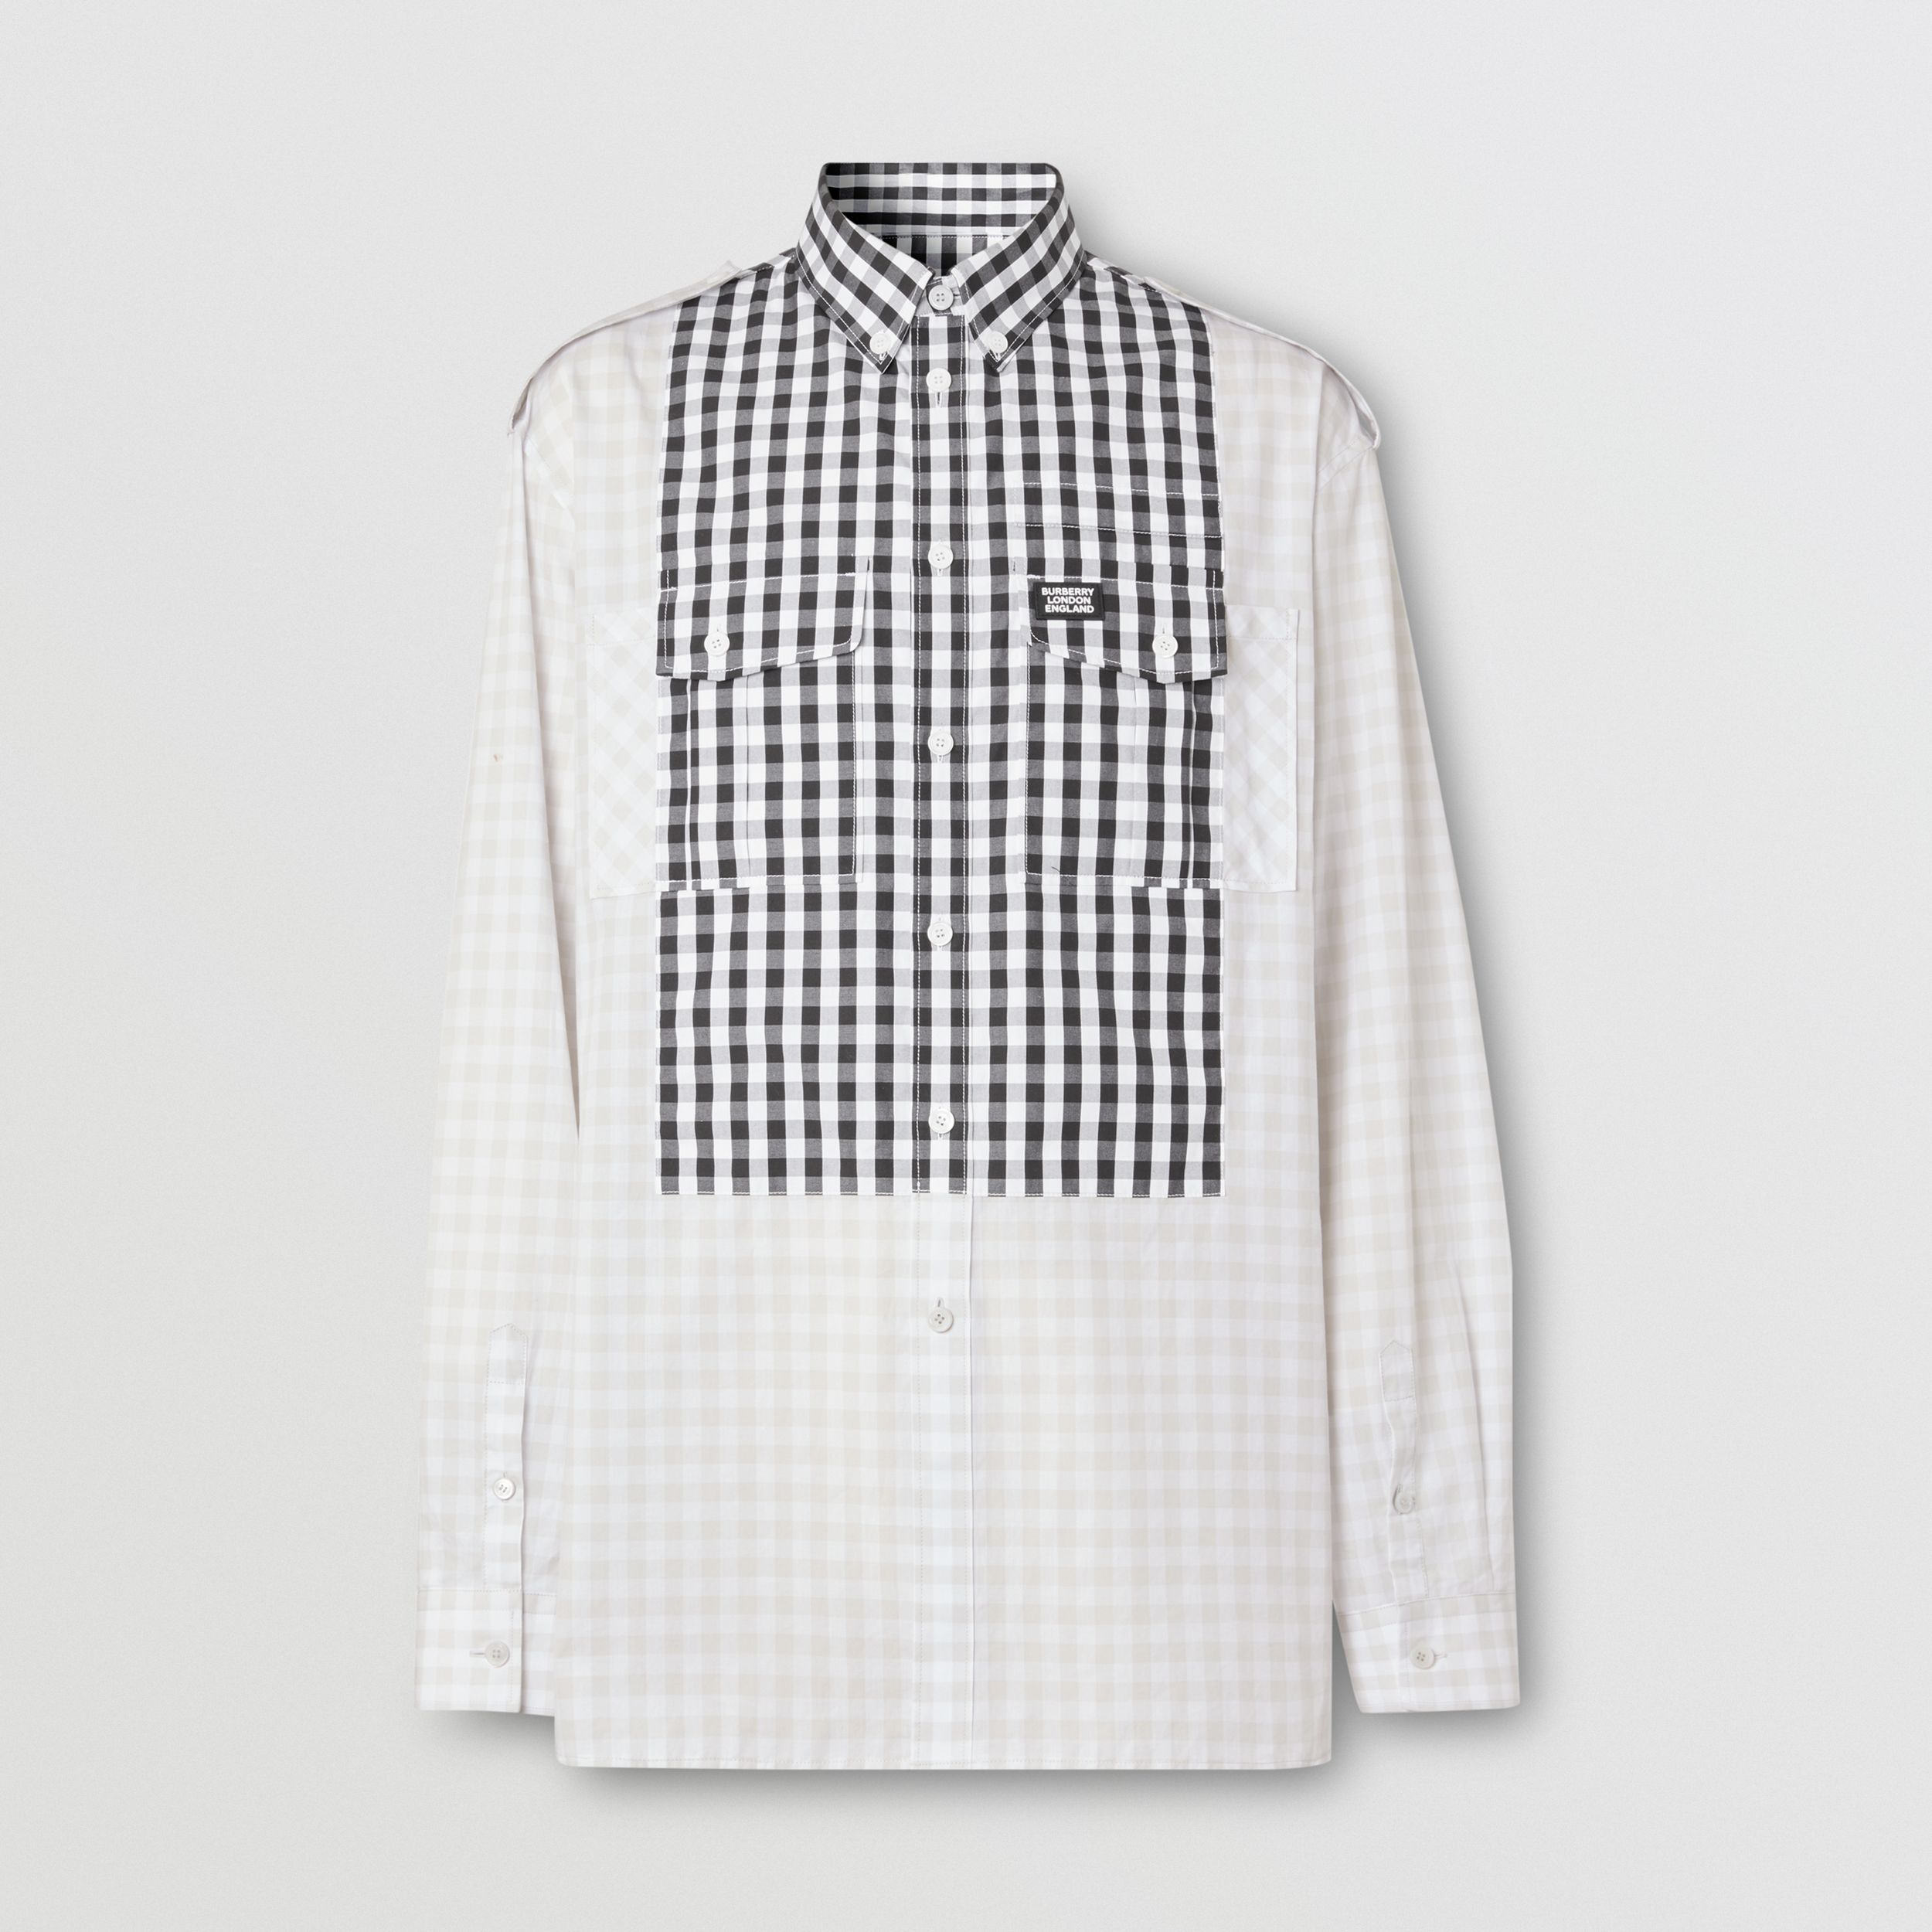 Contrast Bib Gingham Cotton Poplin Oversized Shirt in Light Pebble Grey - Men | Burberry - 4